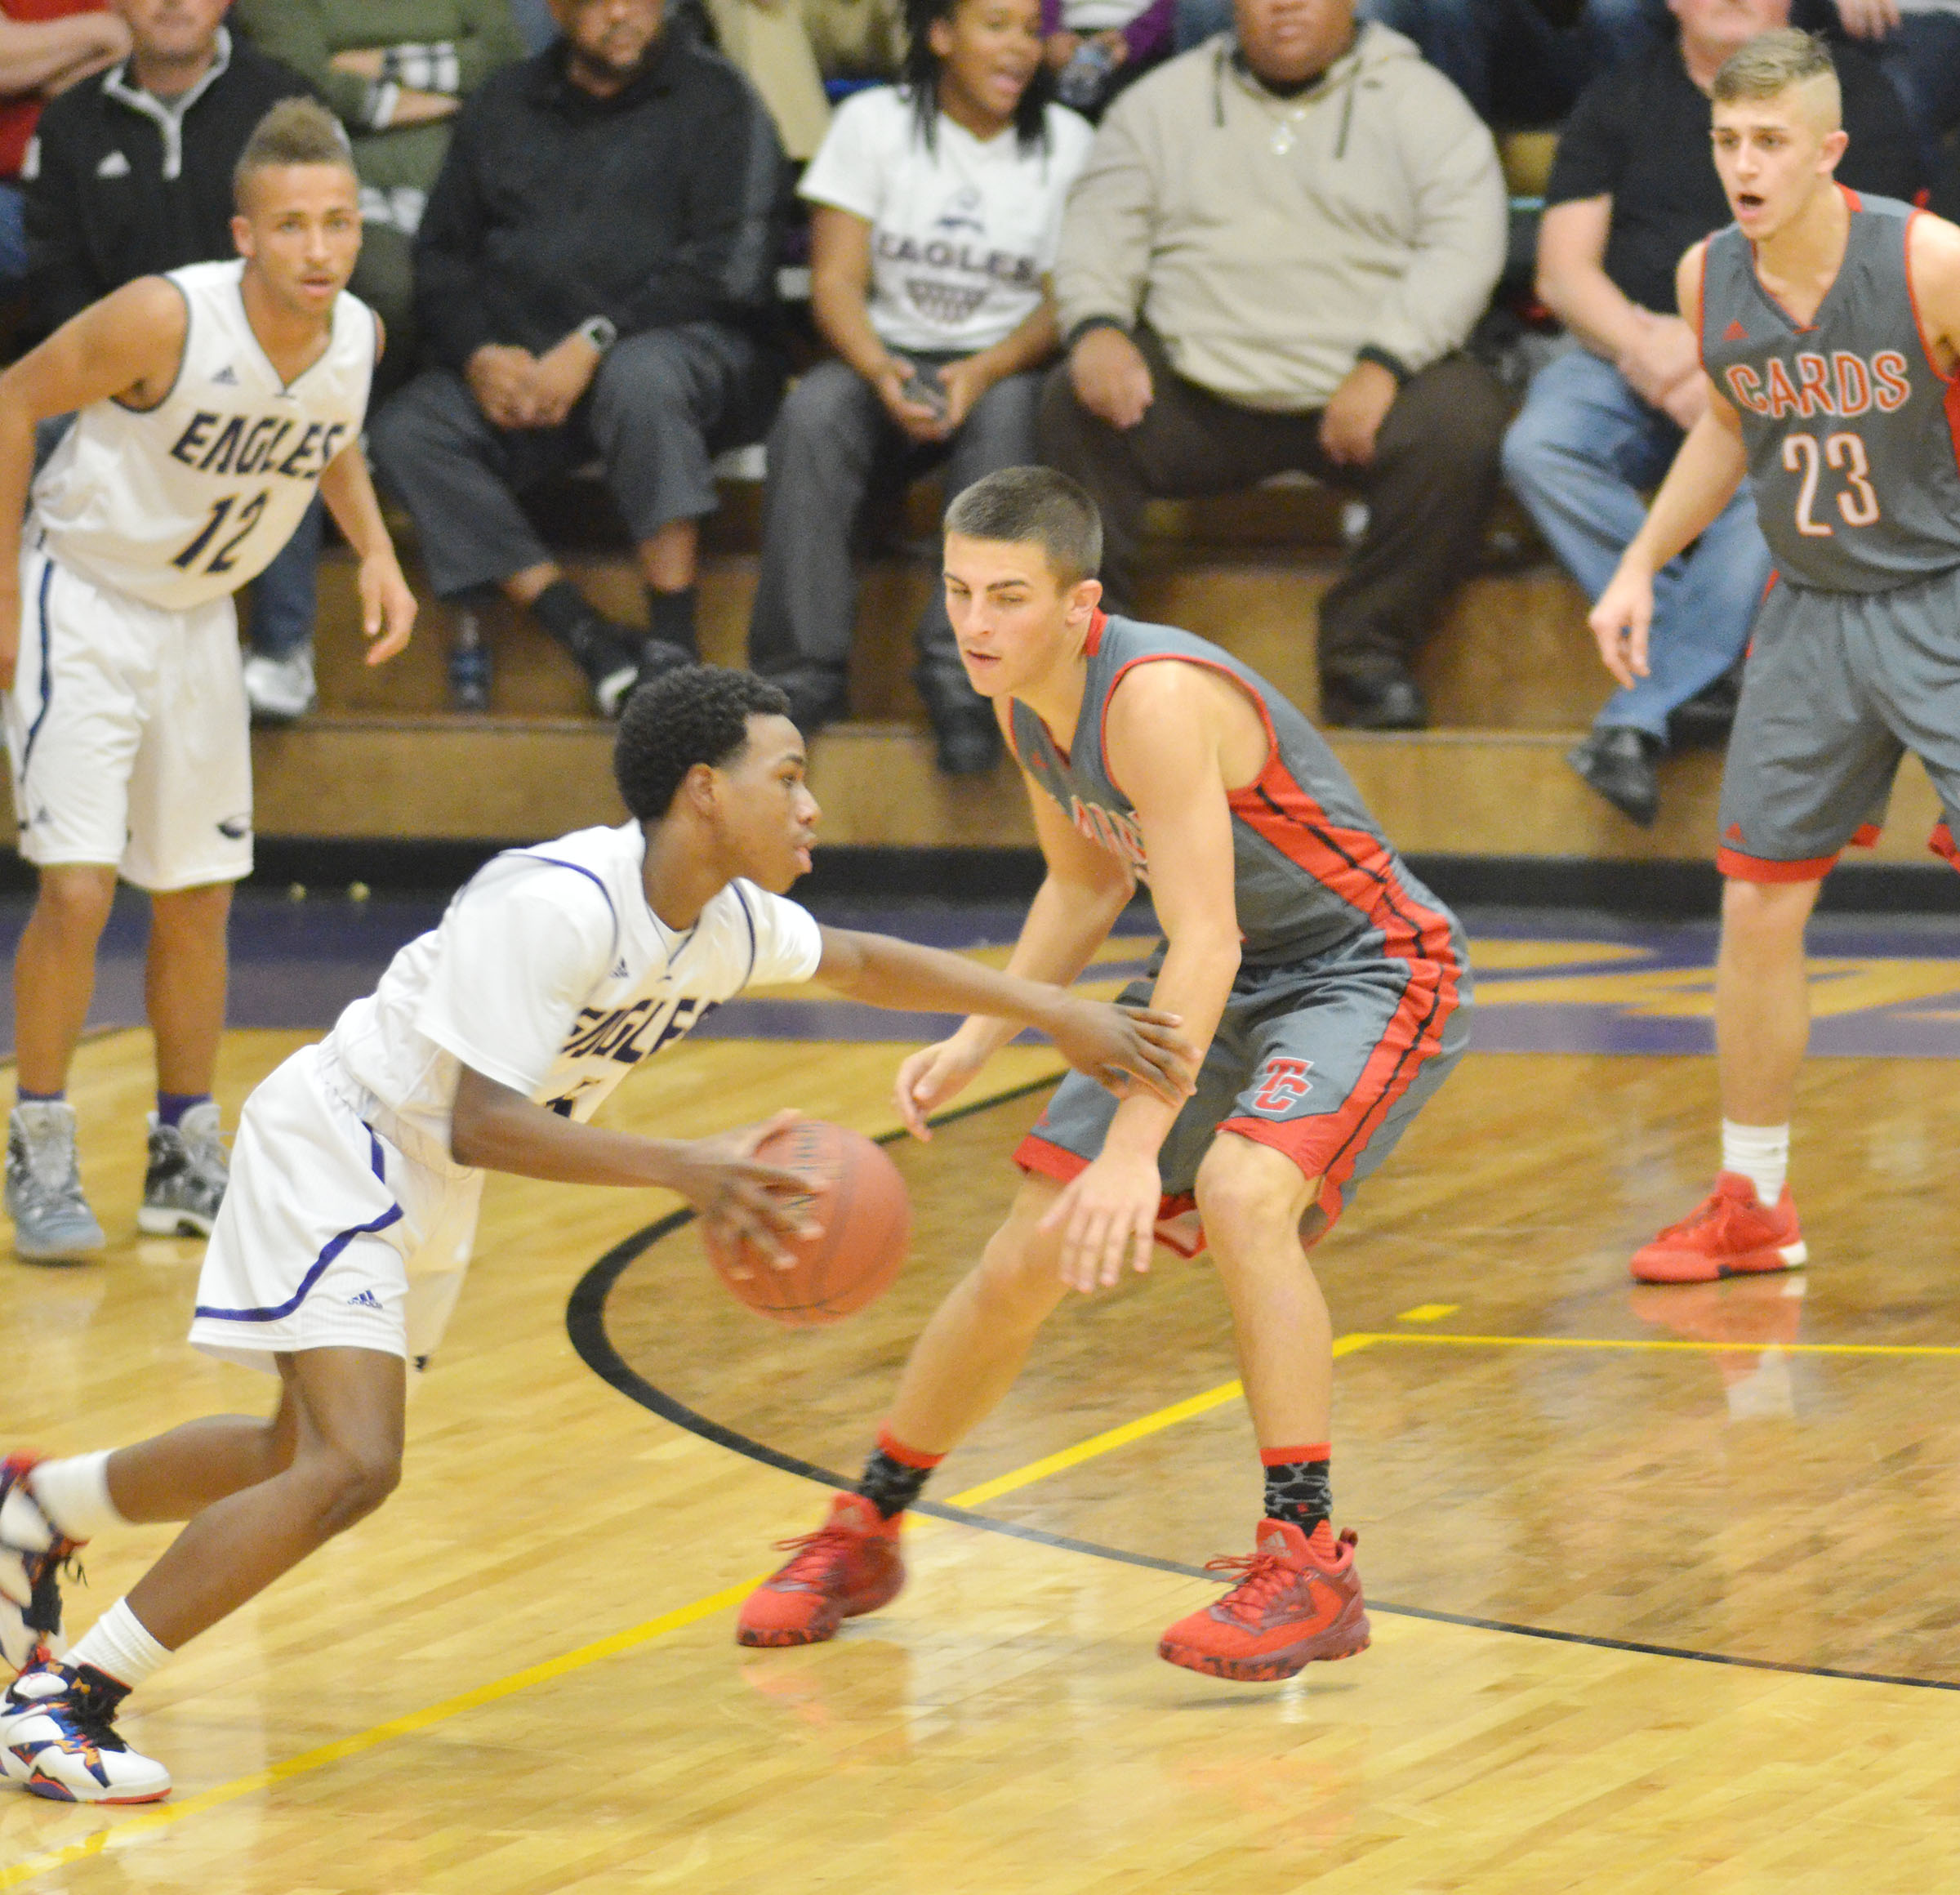 CHs freshman Malachi Corley drives the ball.